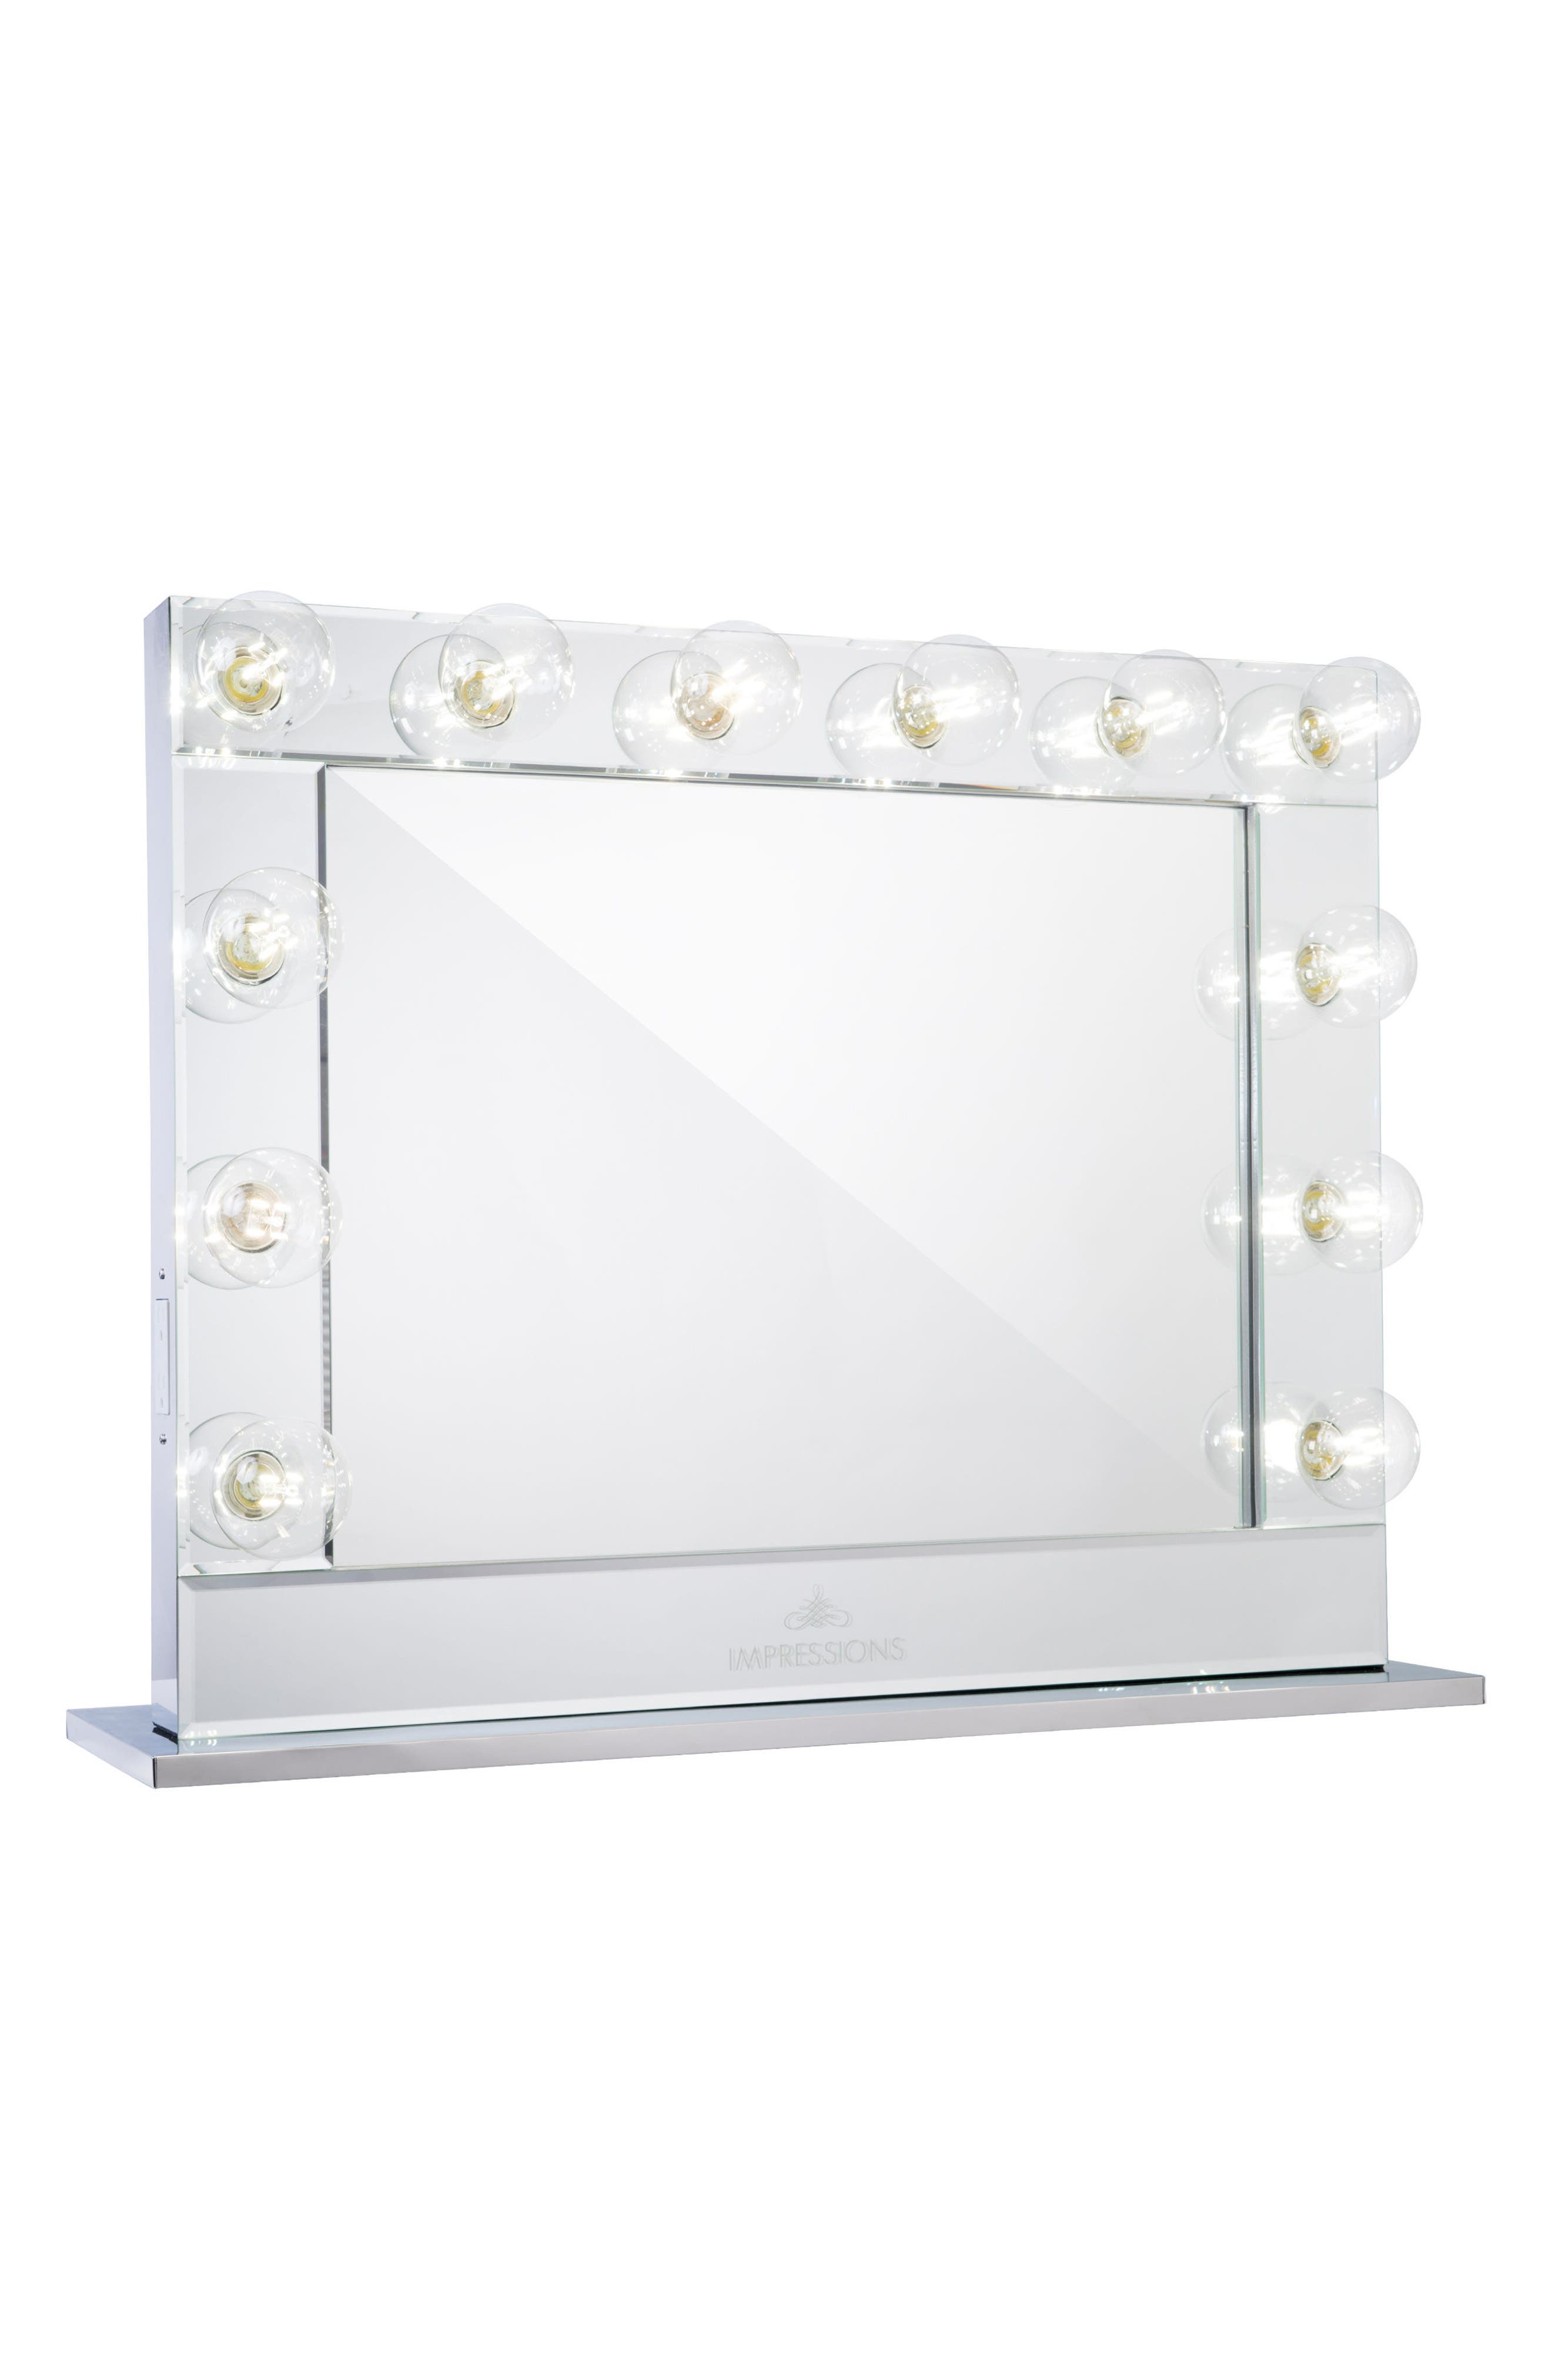 Reflection Plus Vanity Mirror,                             Main thumbnail 1, color,                             100